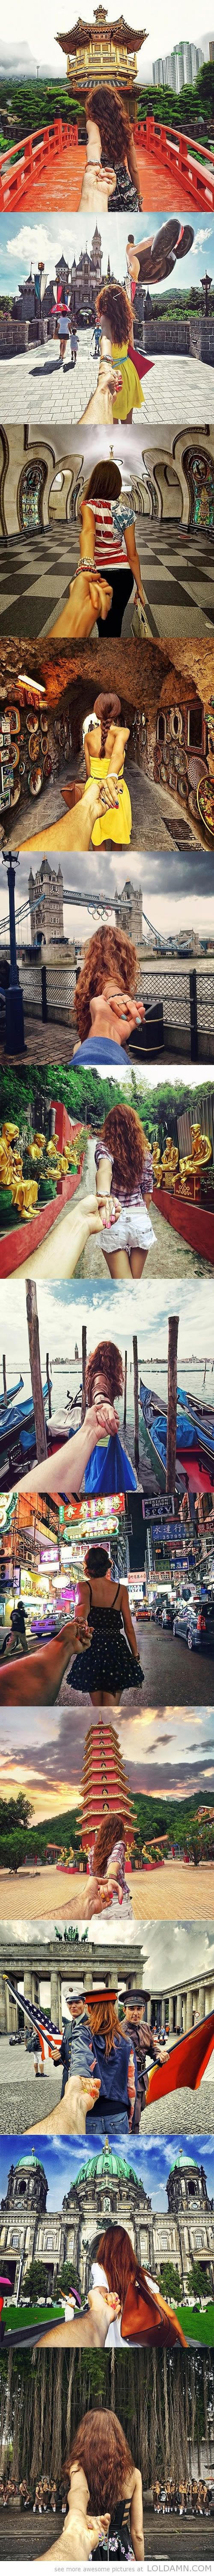 Photographer's girlfriend leads him around the world. Such a sweet idea and perspective.